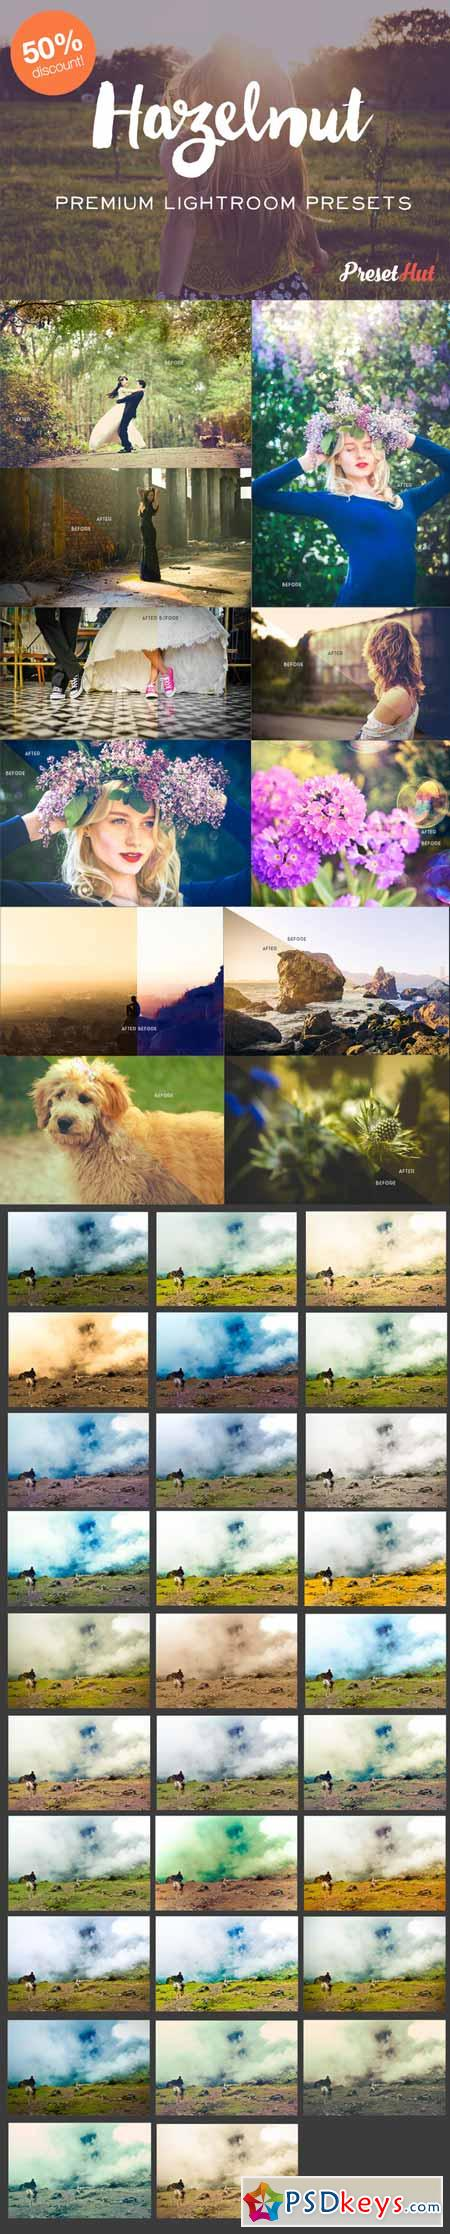 Hazelnut Lightroom Presets 302469